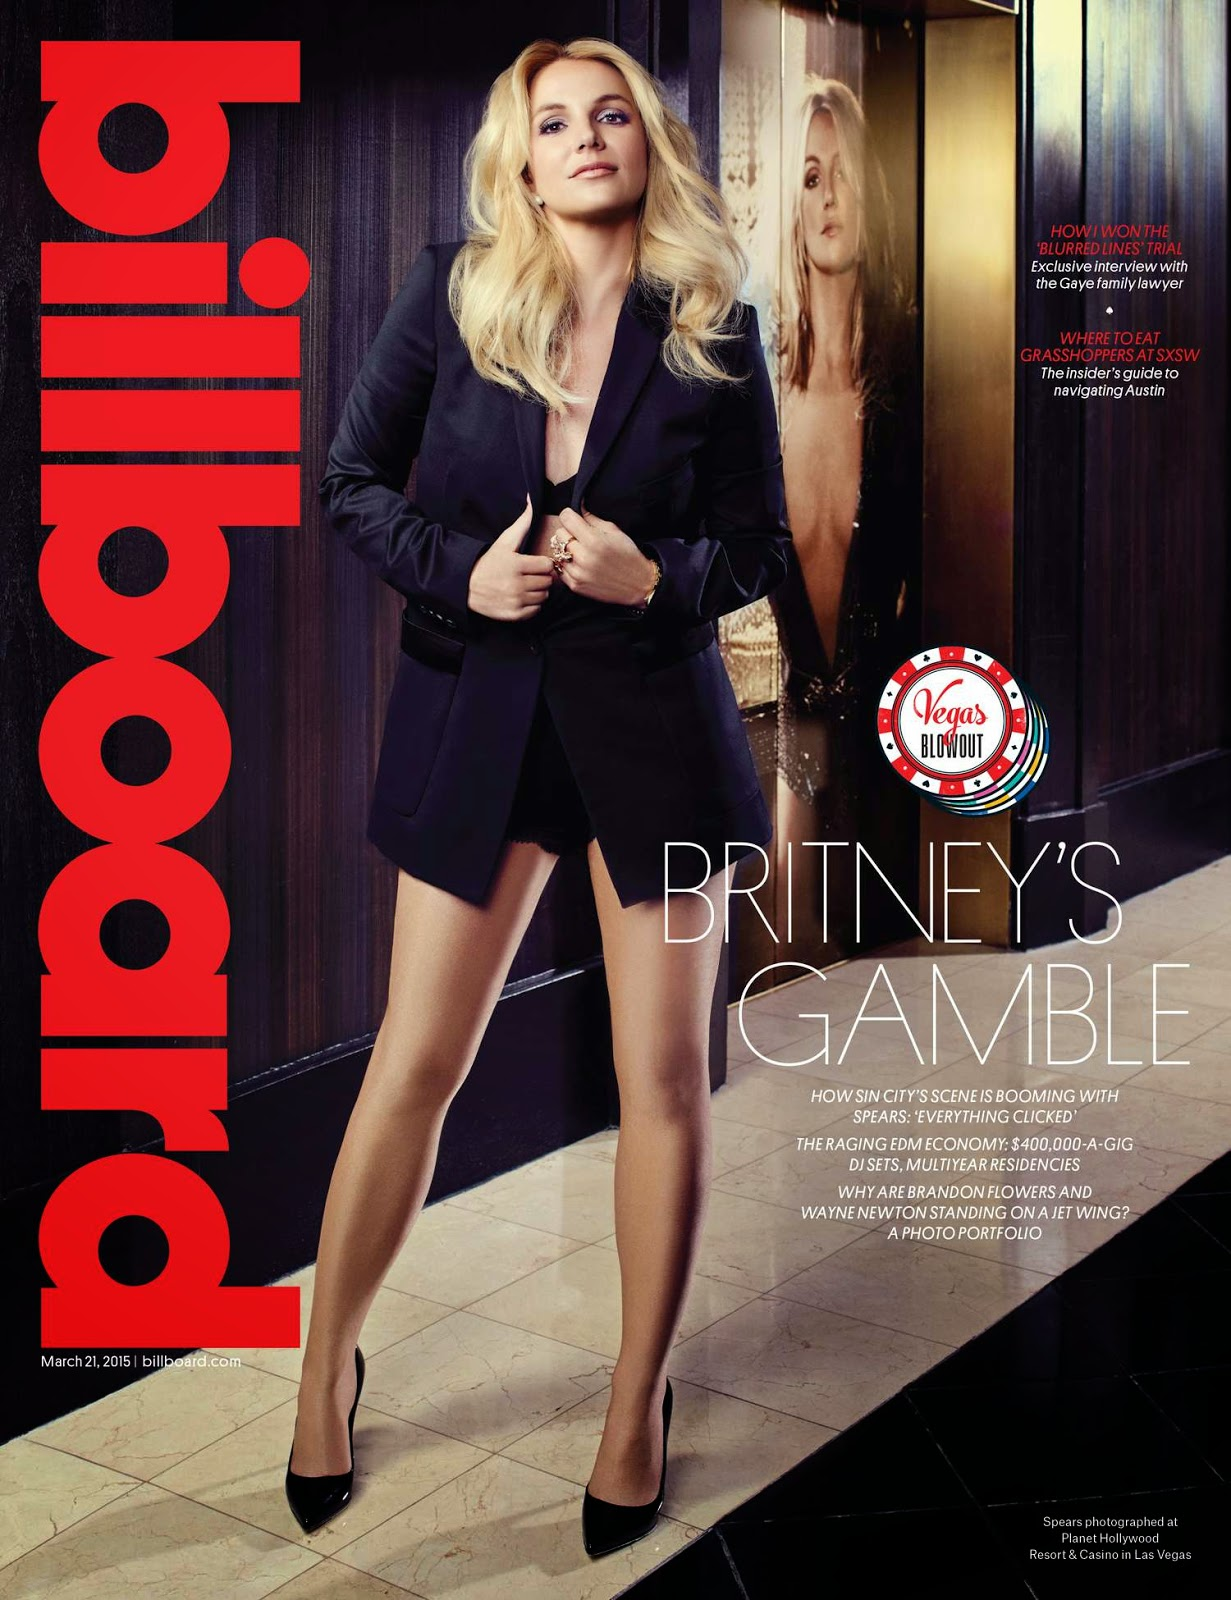 Britney Spears flaunts legs for the Billboard magazine March 2015 cover